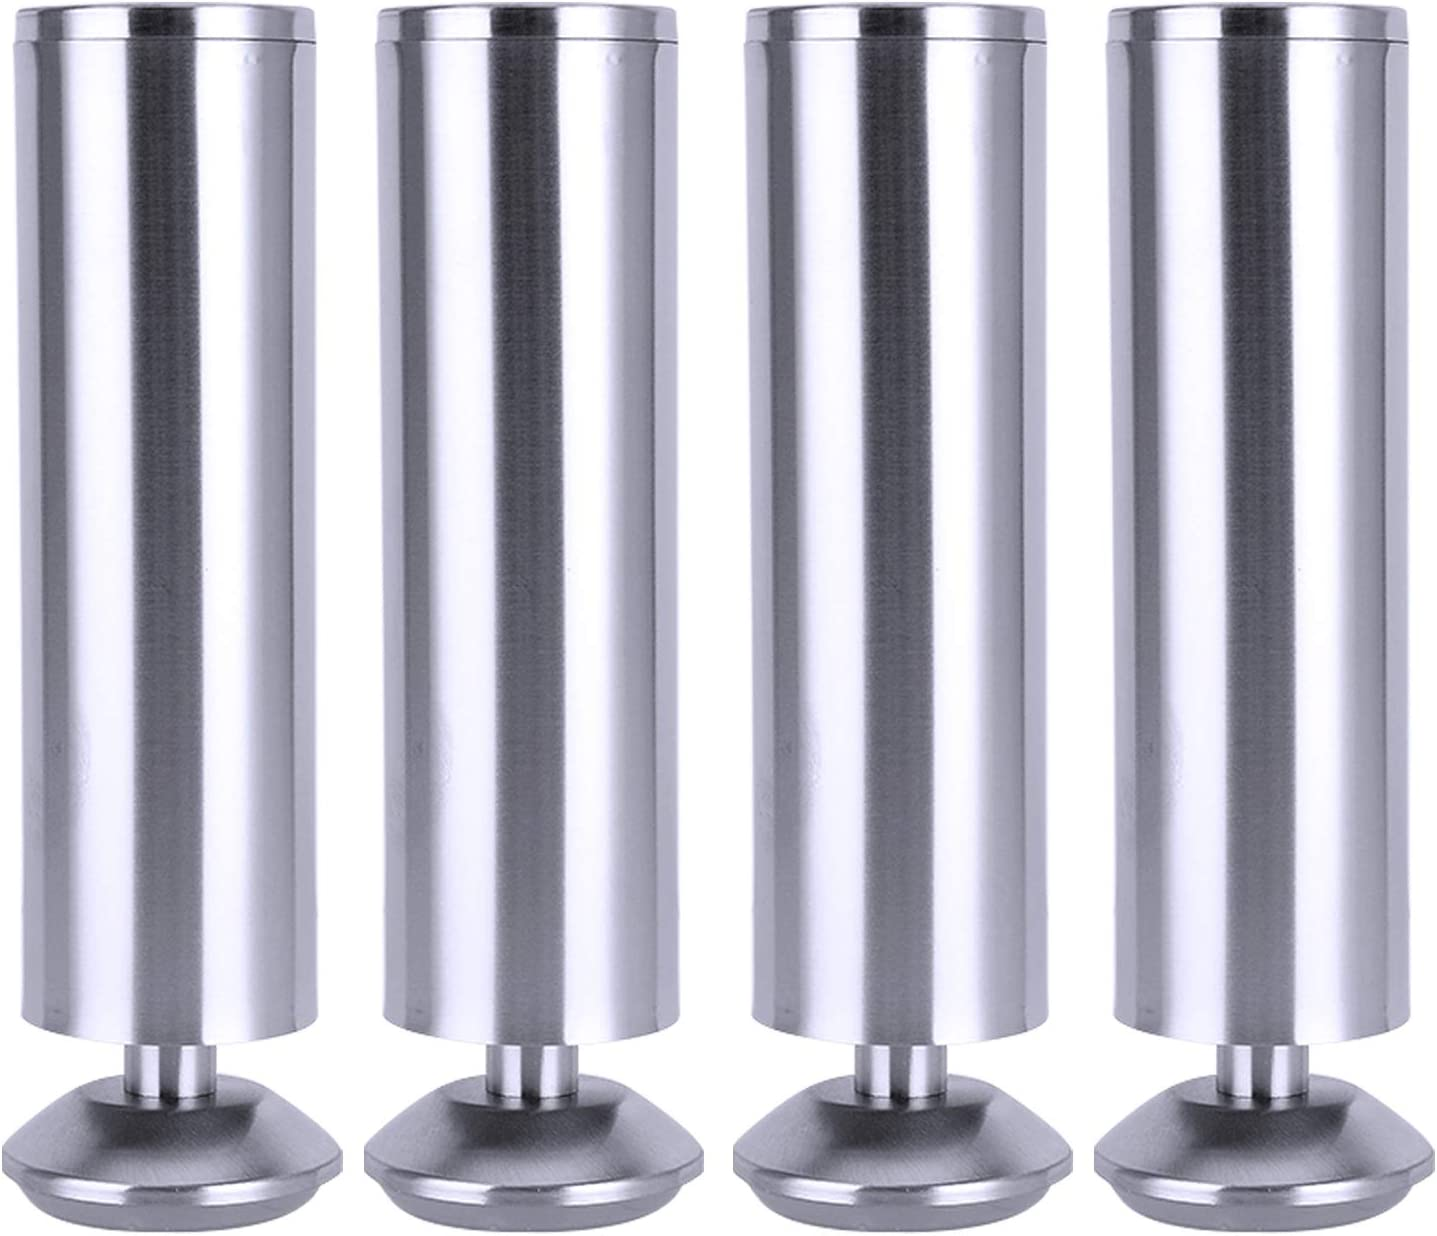 SAVORLIVING Furniture Riser (Pack of 4) Stainless Steel Table Riser Heavy Duty Detachable Sofa Table Desk Lifts Great for Under Storage (XXL)